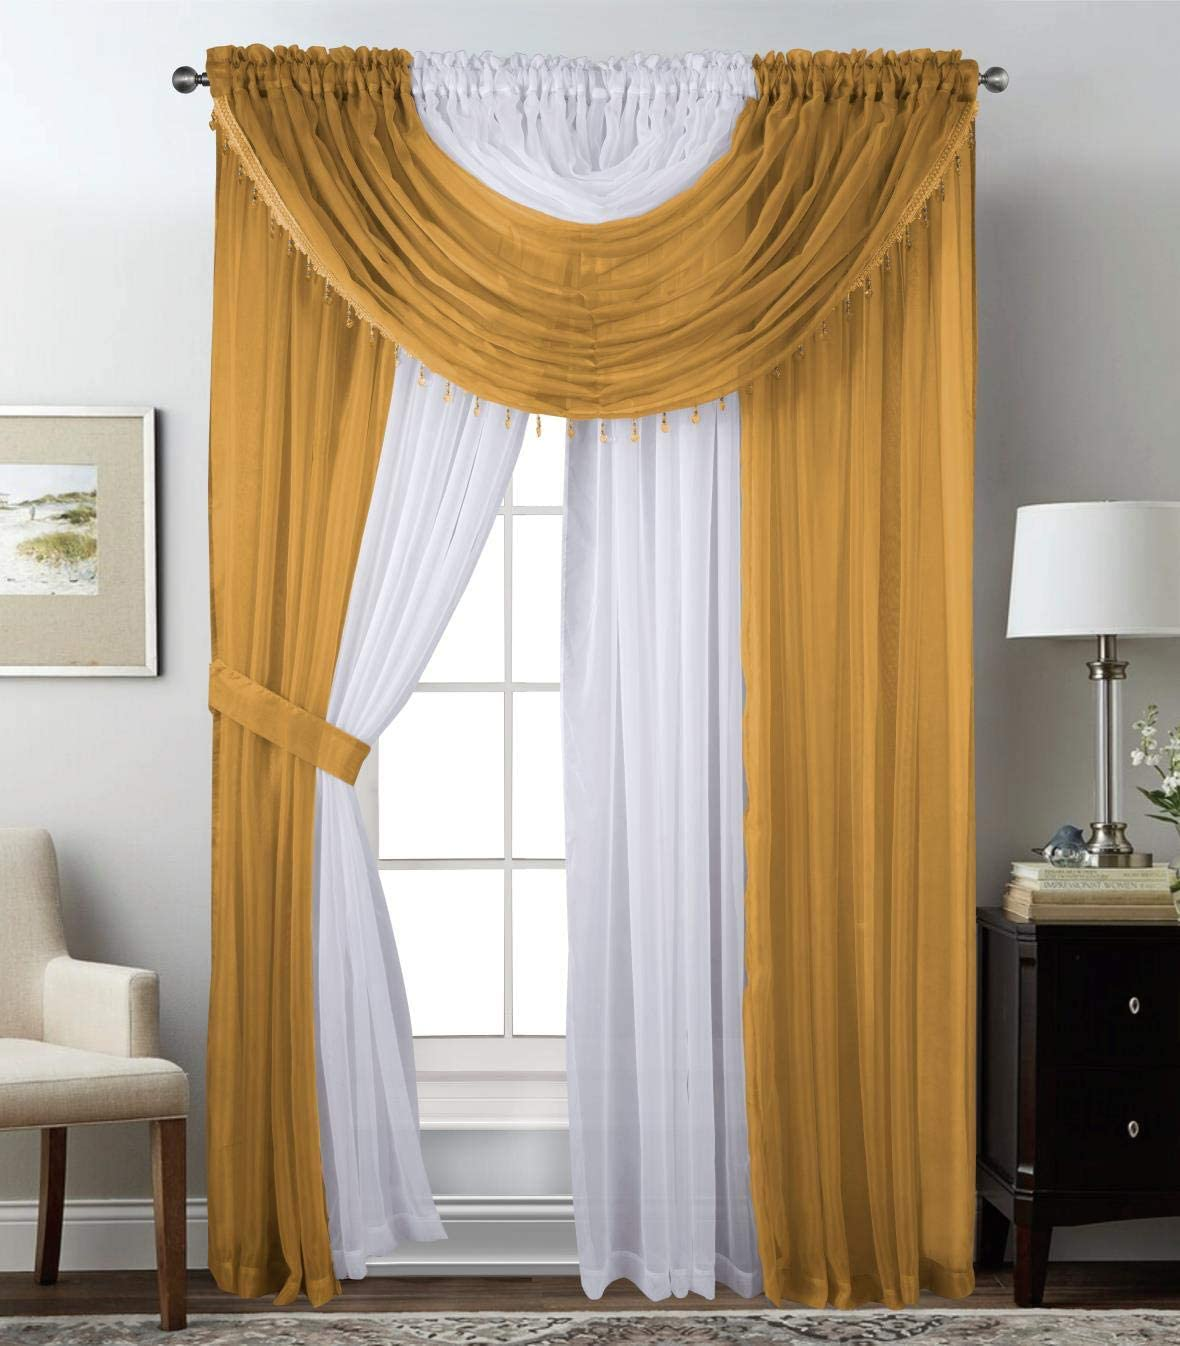 "Sapphire Home Complete Window Sheer Curtain Panel Set with 4 Attached Panels (55x84 Each) and 2 Valances with Beads and 2 Tiebacks - Easy Installation- Multicolor 84"" Gold"